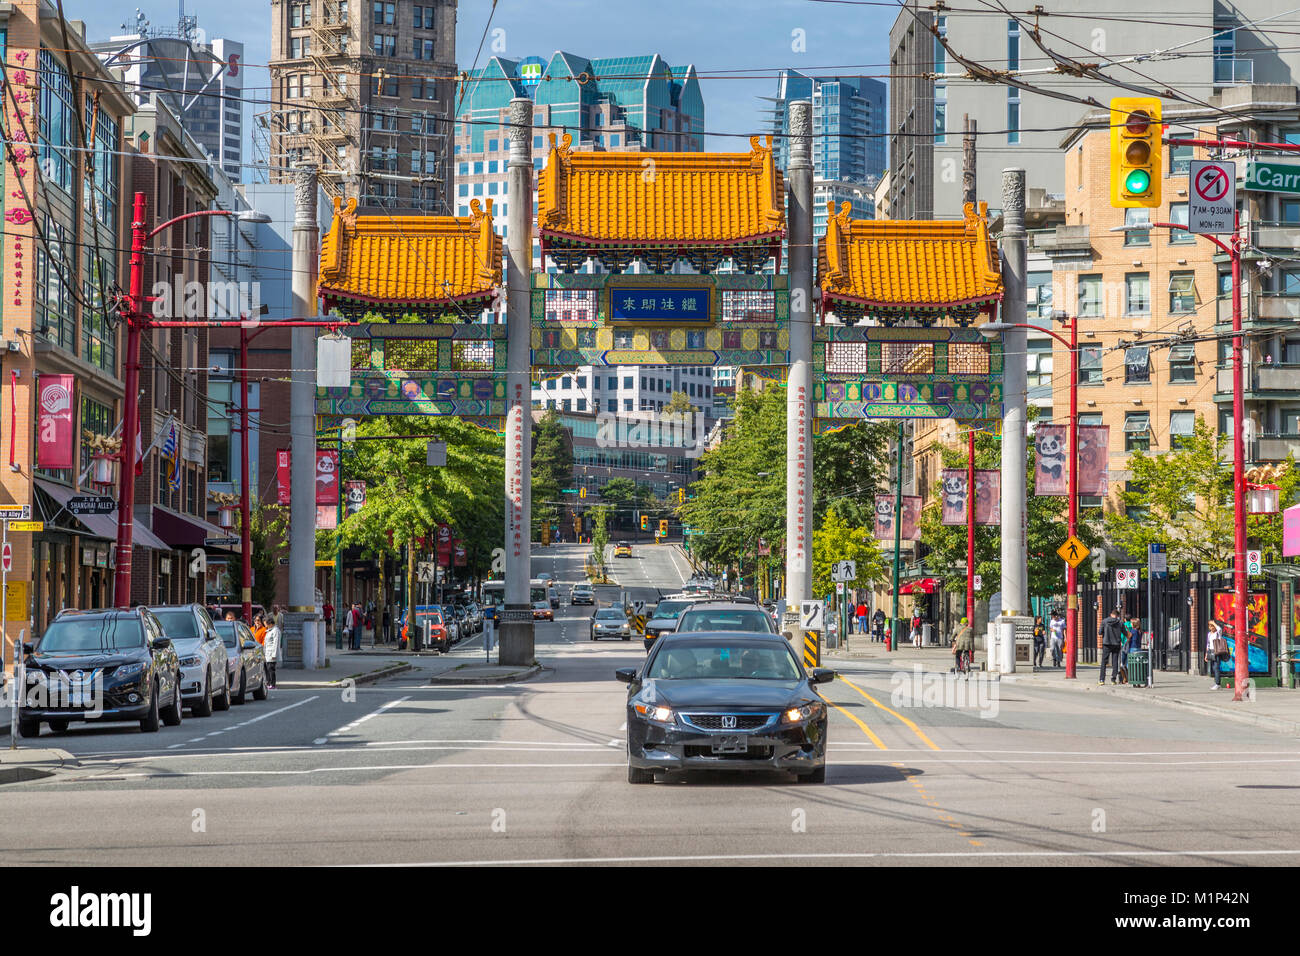 Colourful entrance to Chinatown, Vancouver, British Columbia, Canada, North America - Stock Image